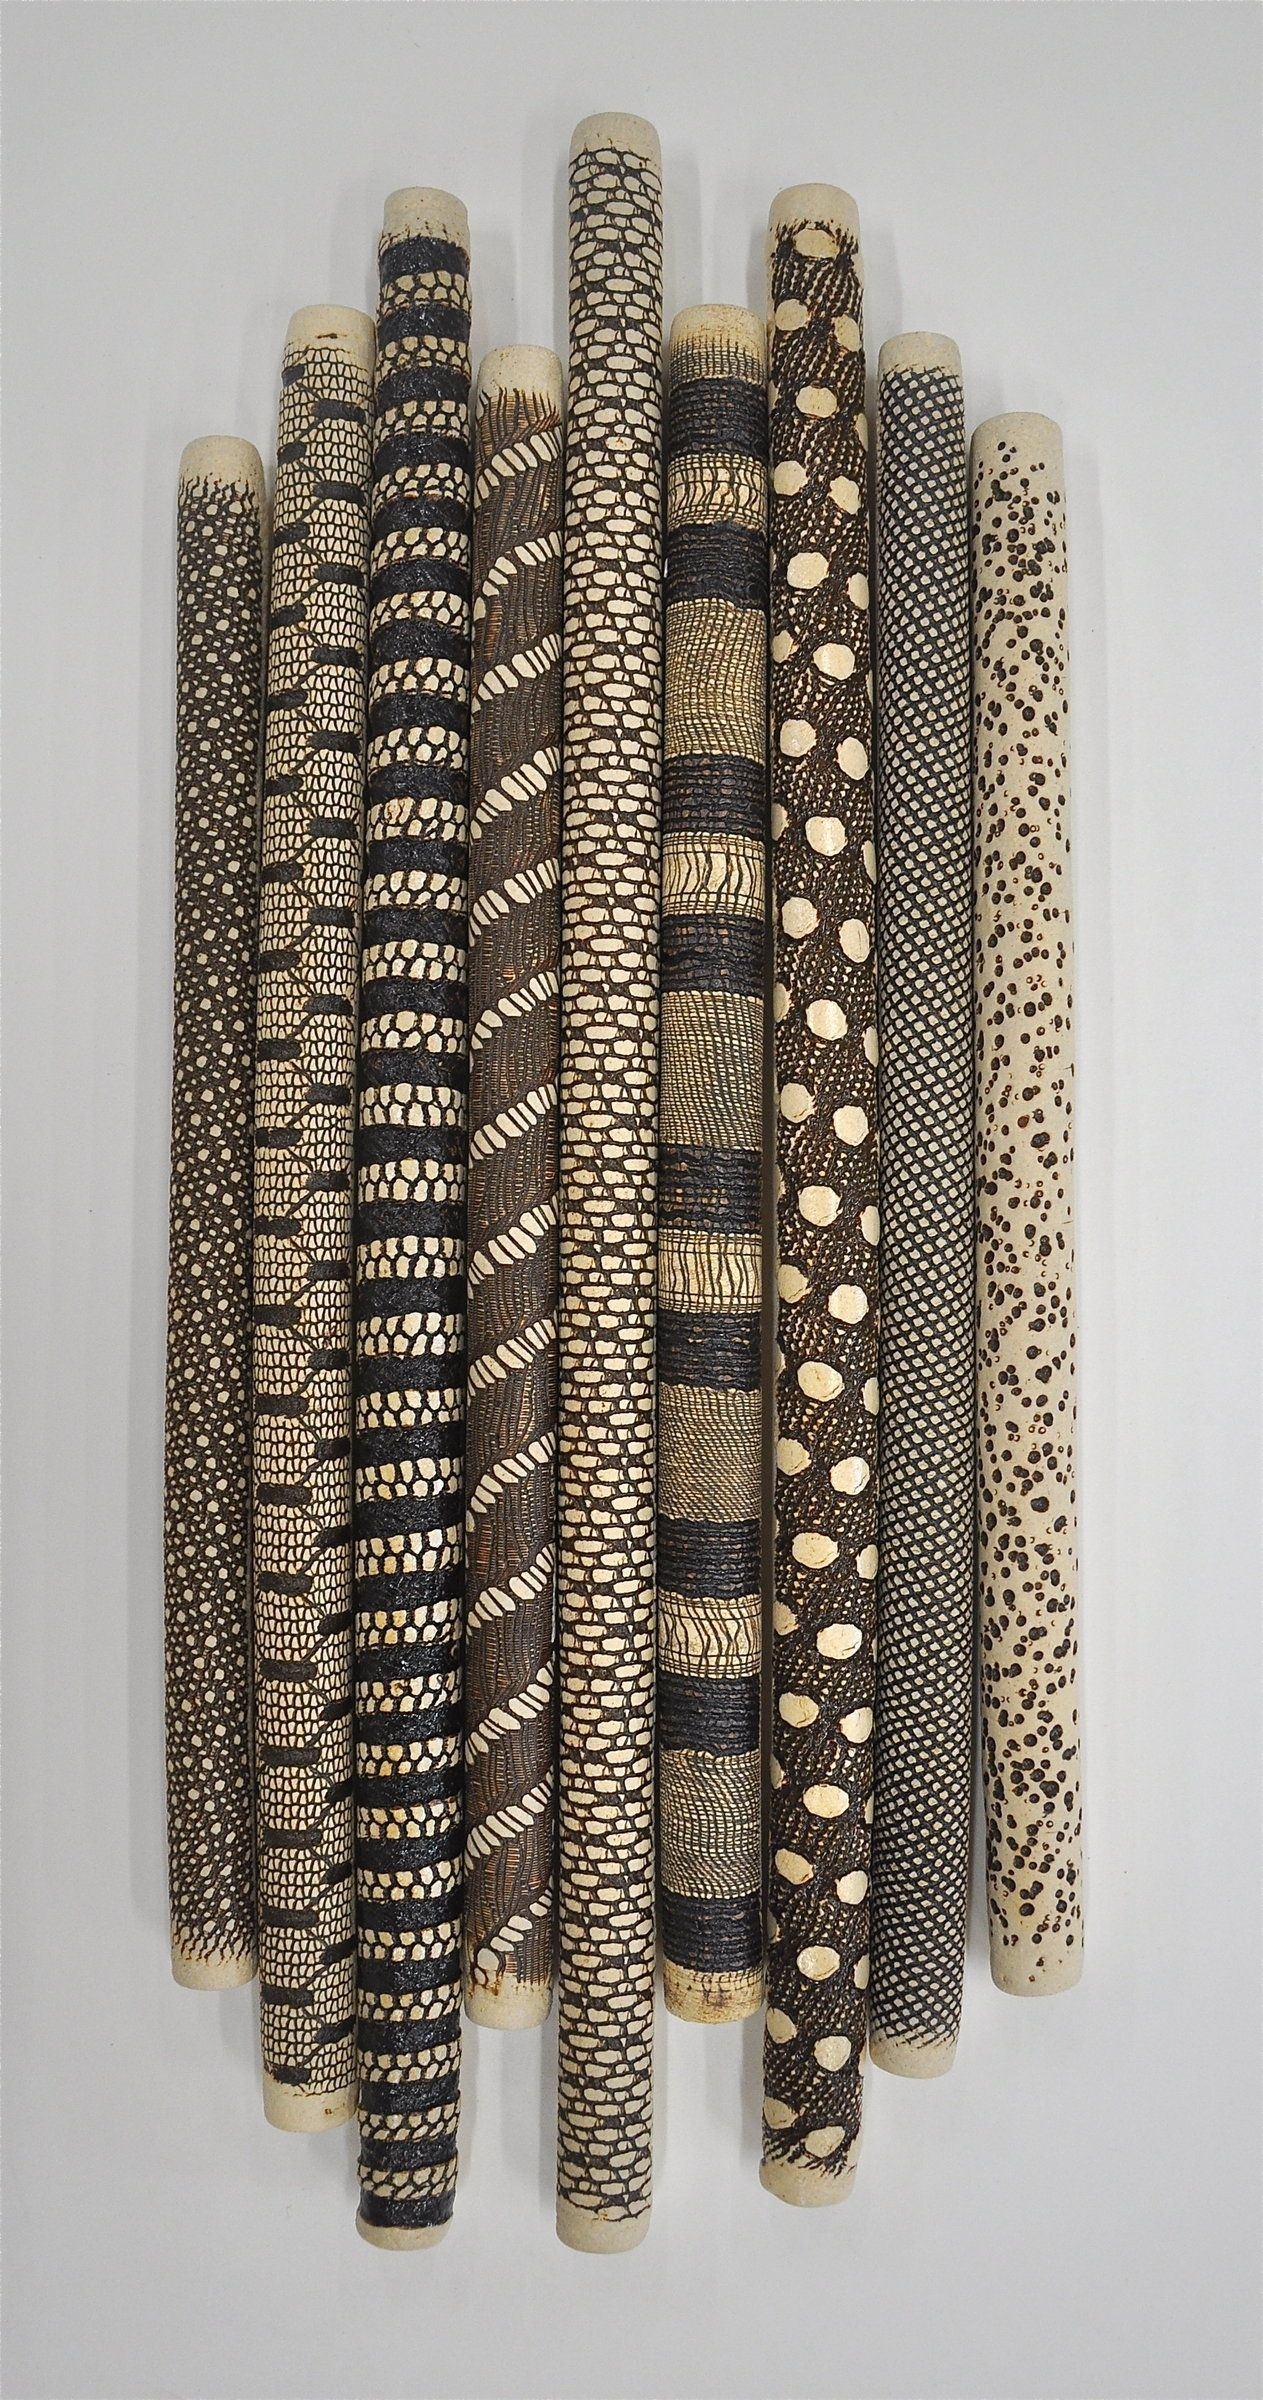 9-Piece Installationkelly Jean Ohl (Ceramic Wall Sculpture intended for Ceramic Wall Art (Image 3 of 20)